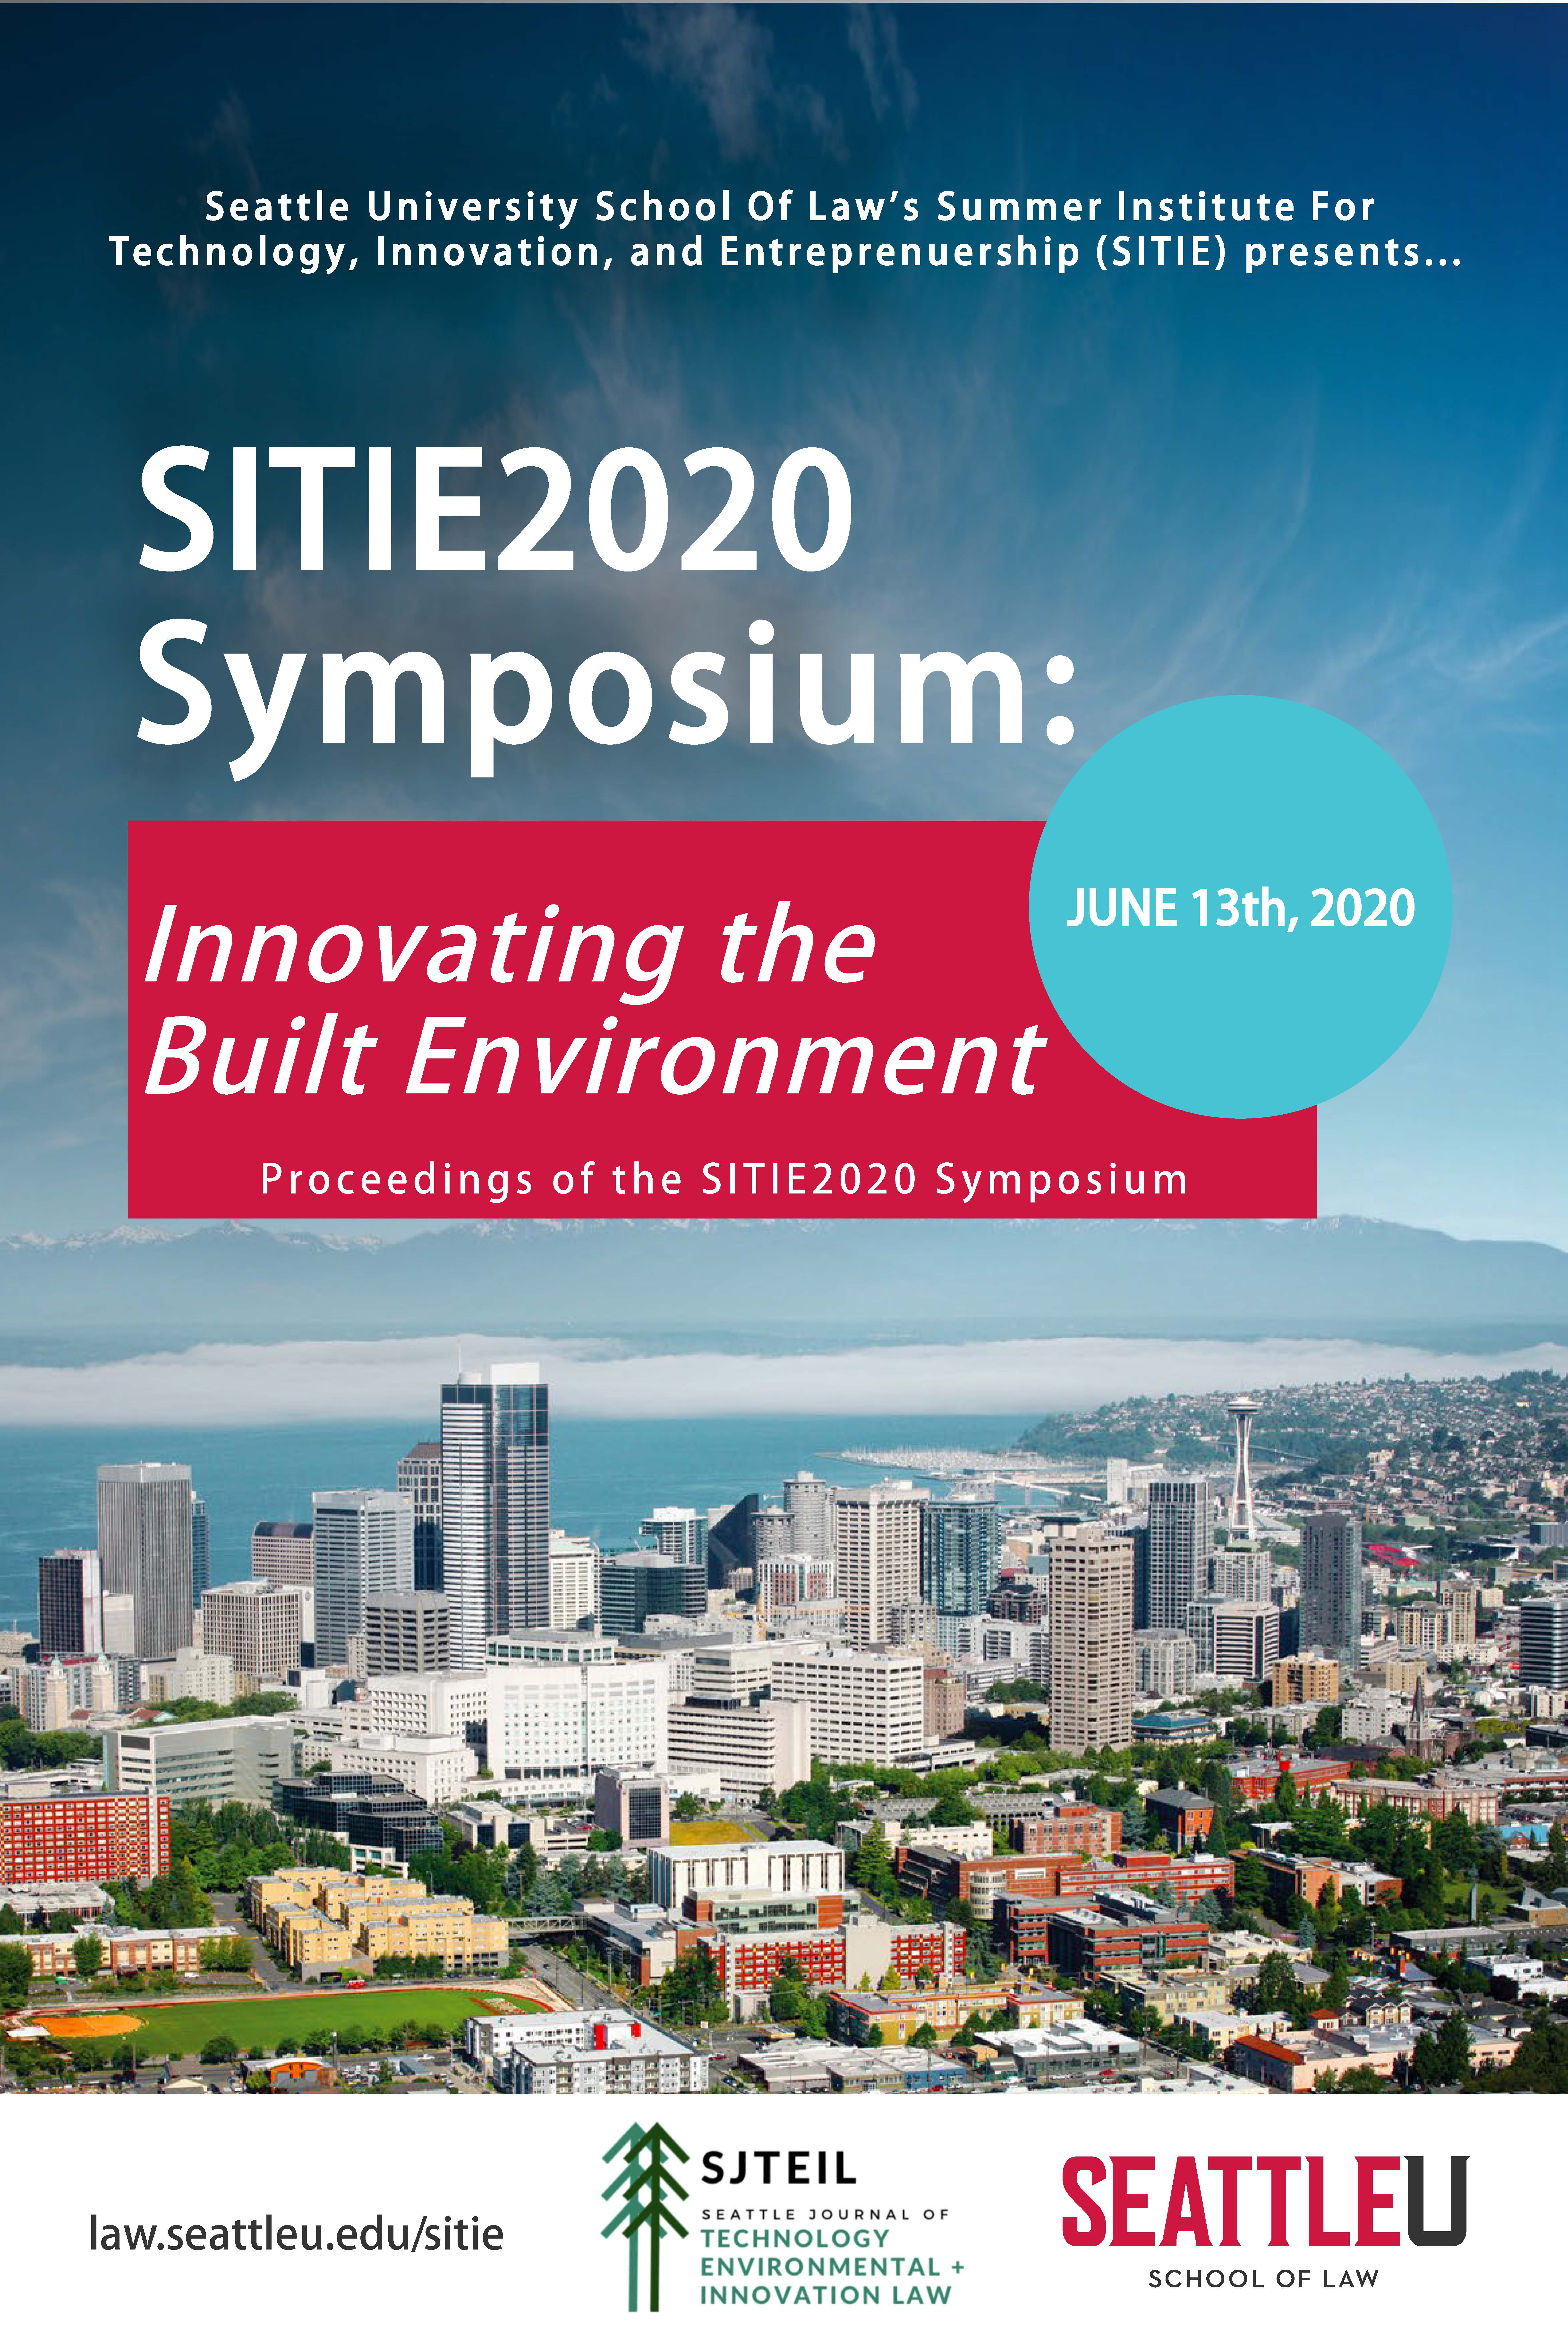 SITIE2020 Symposium: Innovating the Built Environment